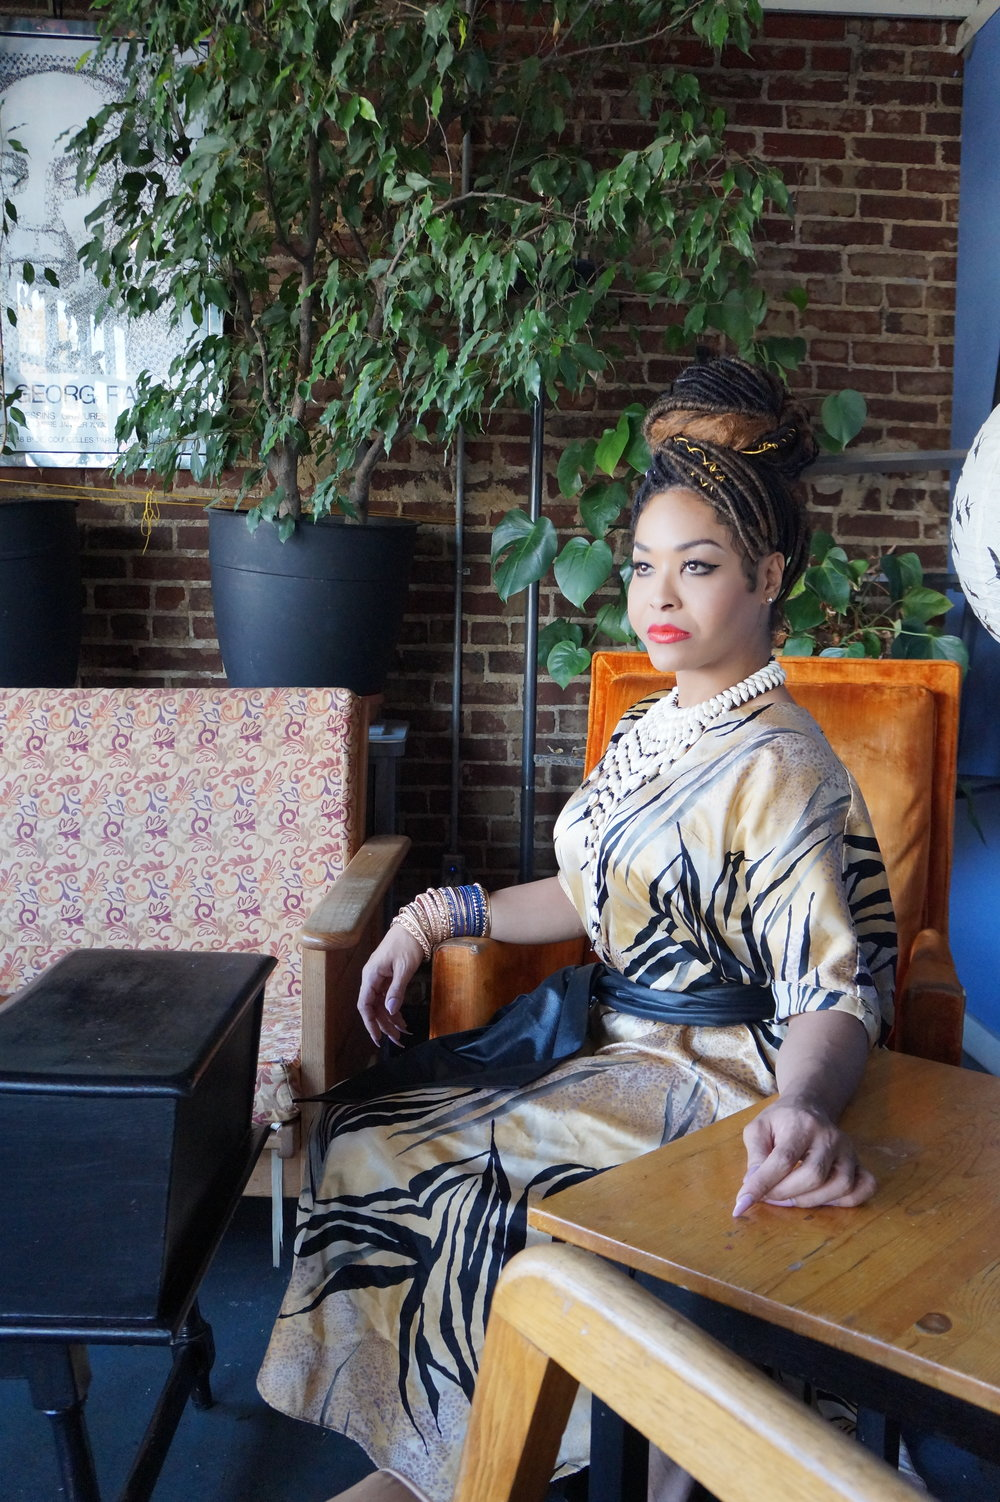 Andrea Fenise Memphis Fashion Blogger interviews Jasmine Tasaki Memphis transgender woman of color for Working Girl Series